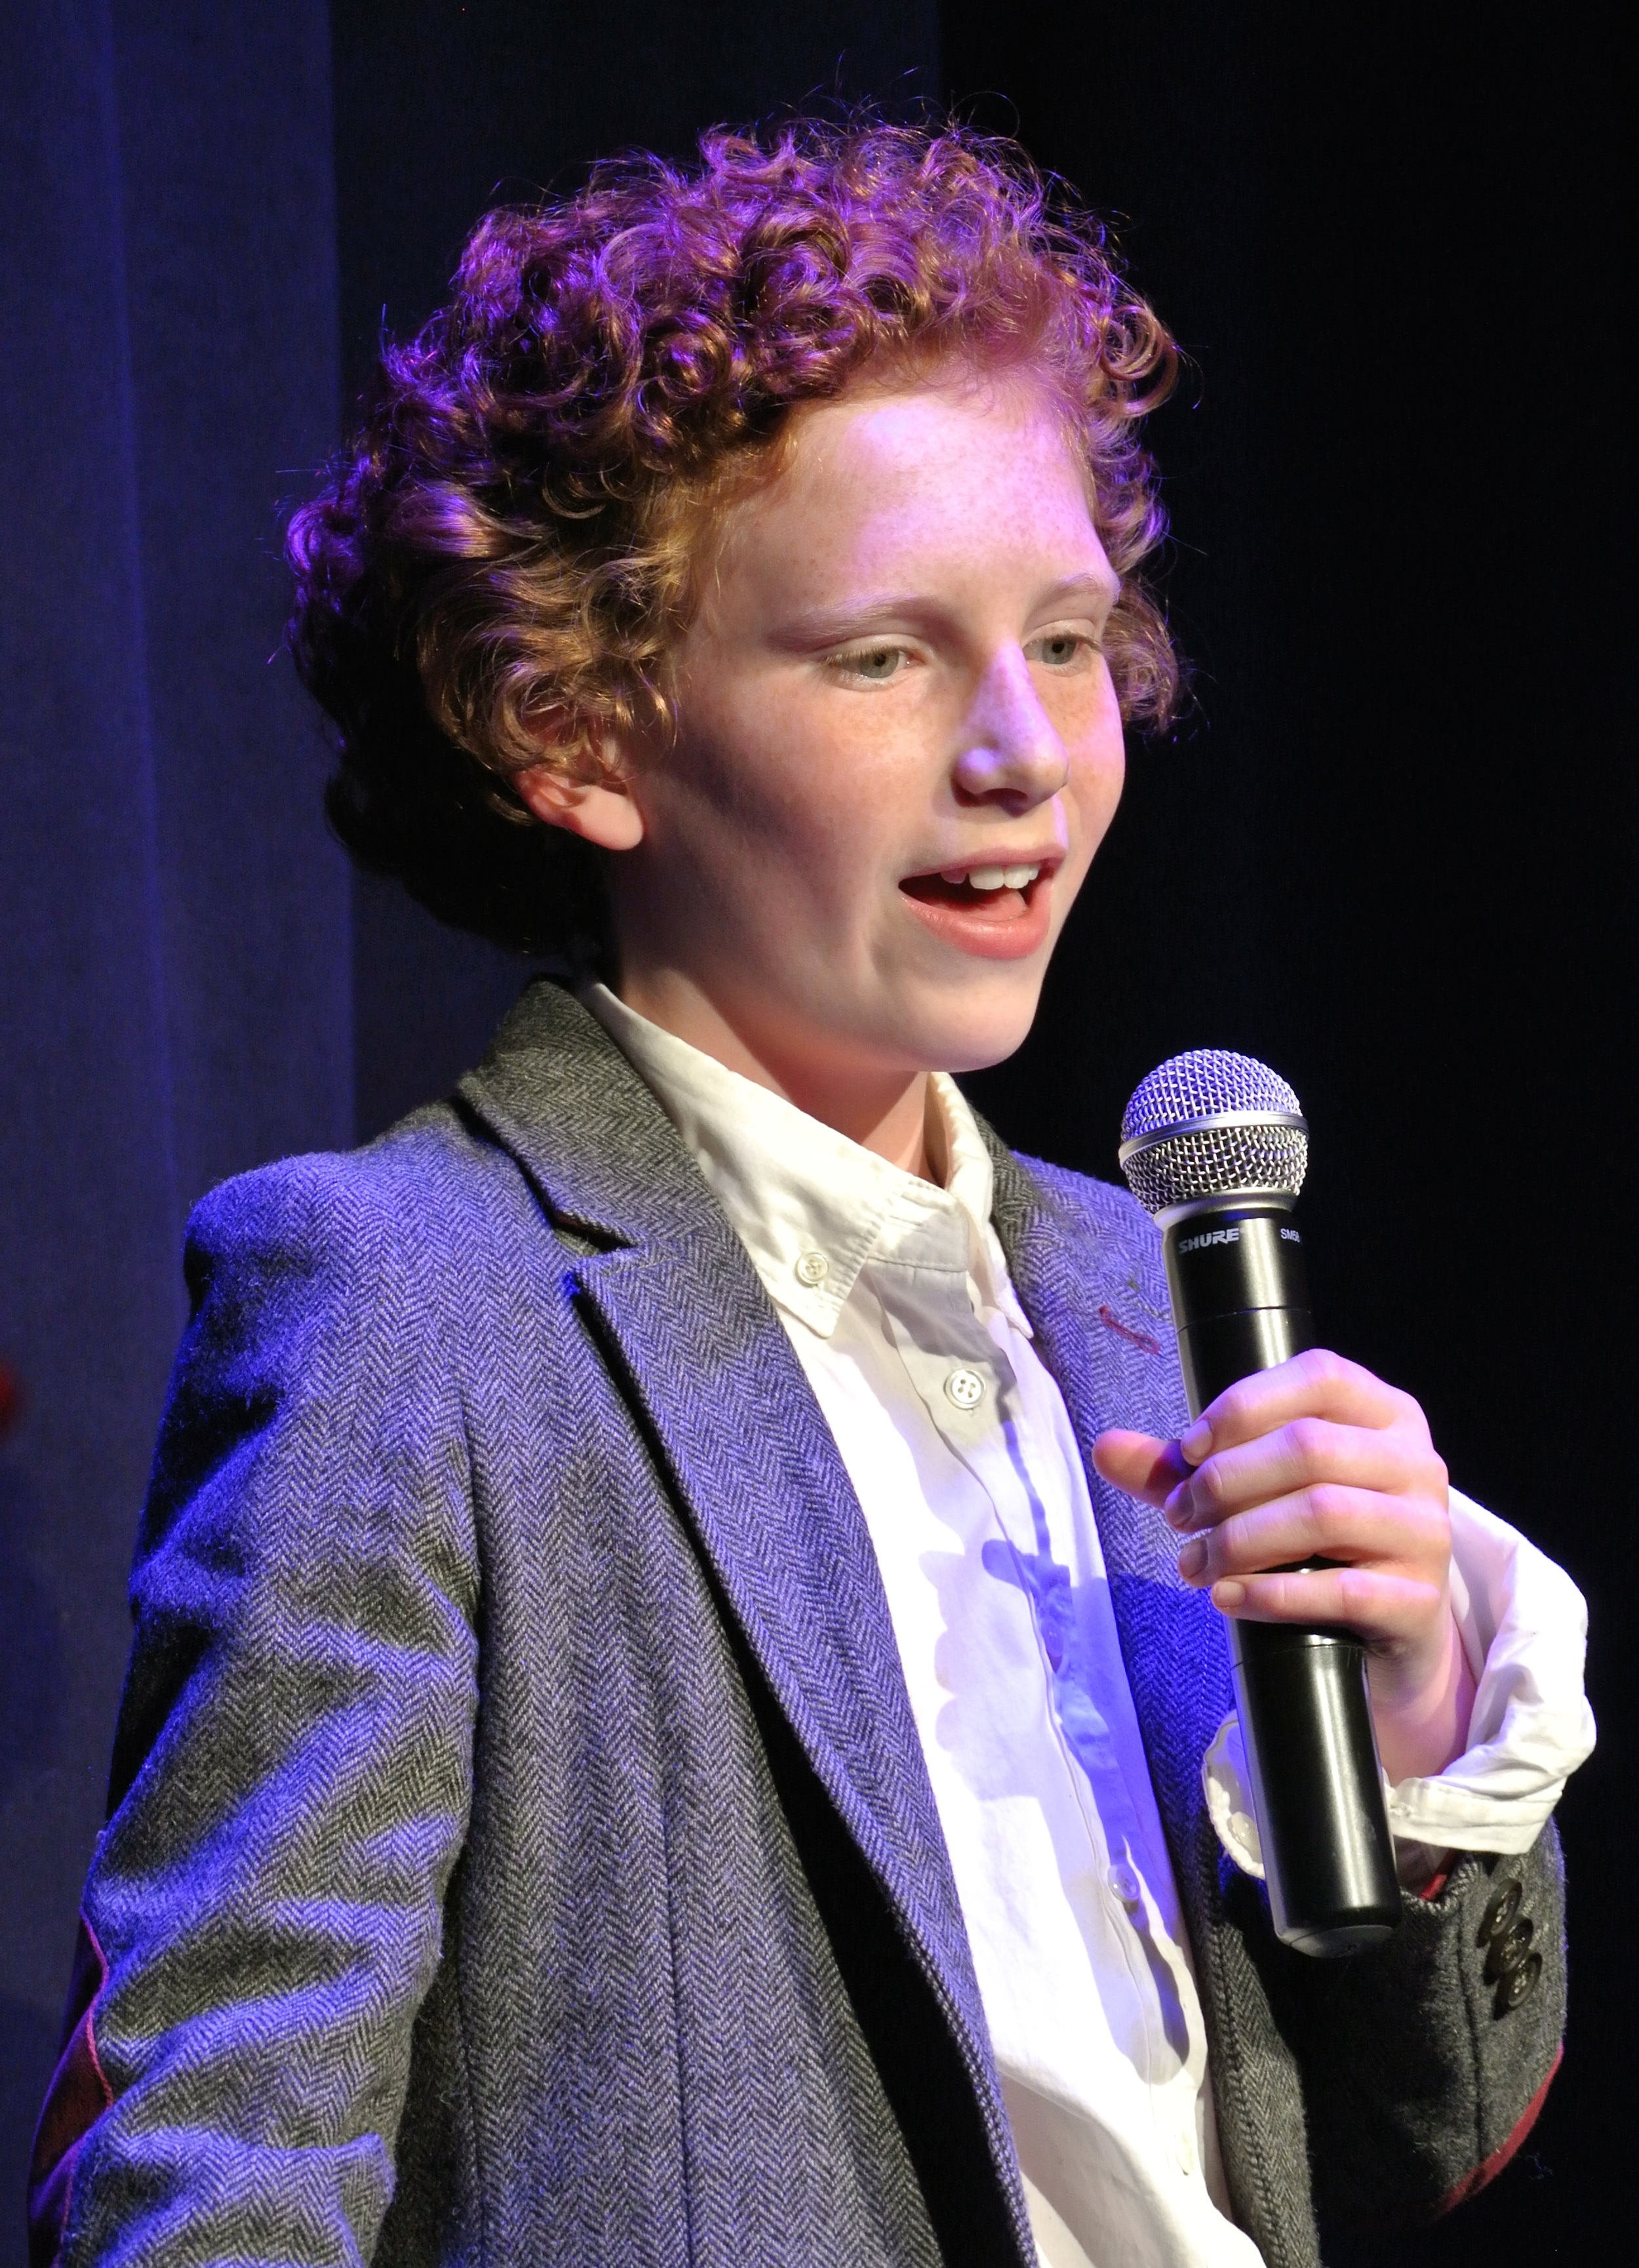 Daniel Untied performed at a voice recital.